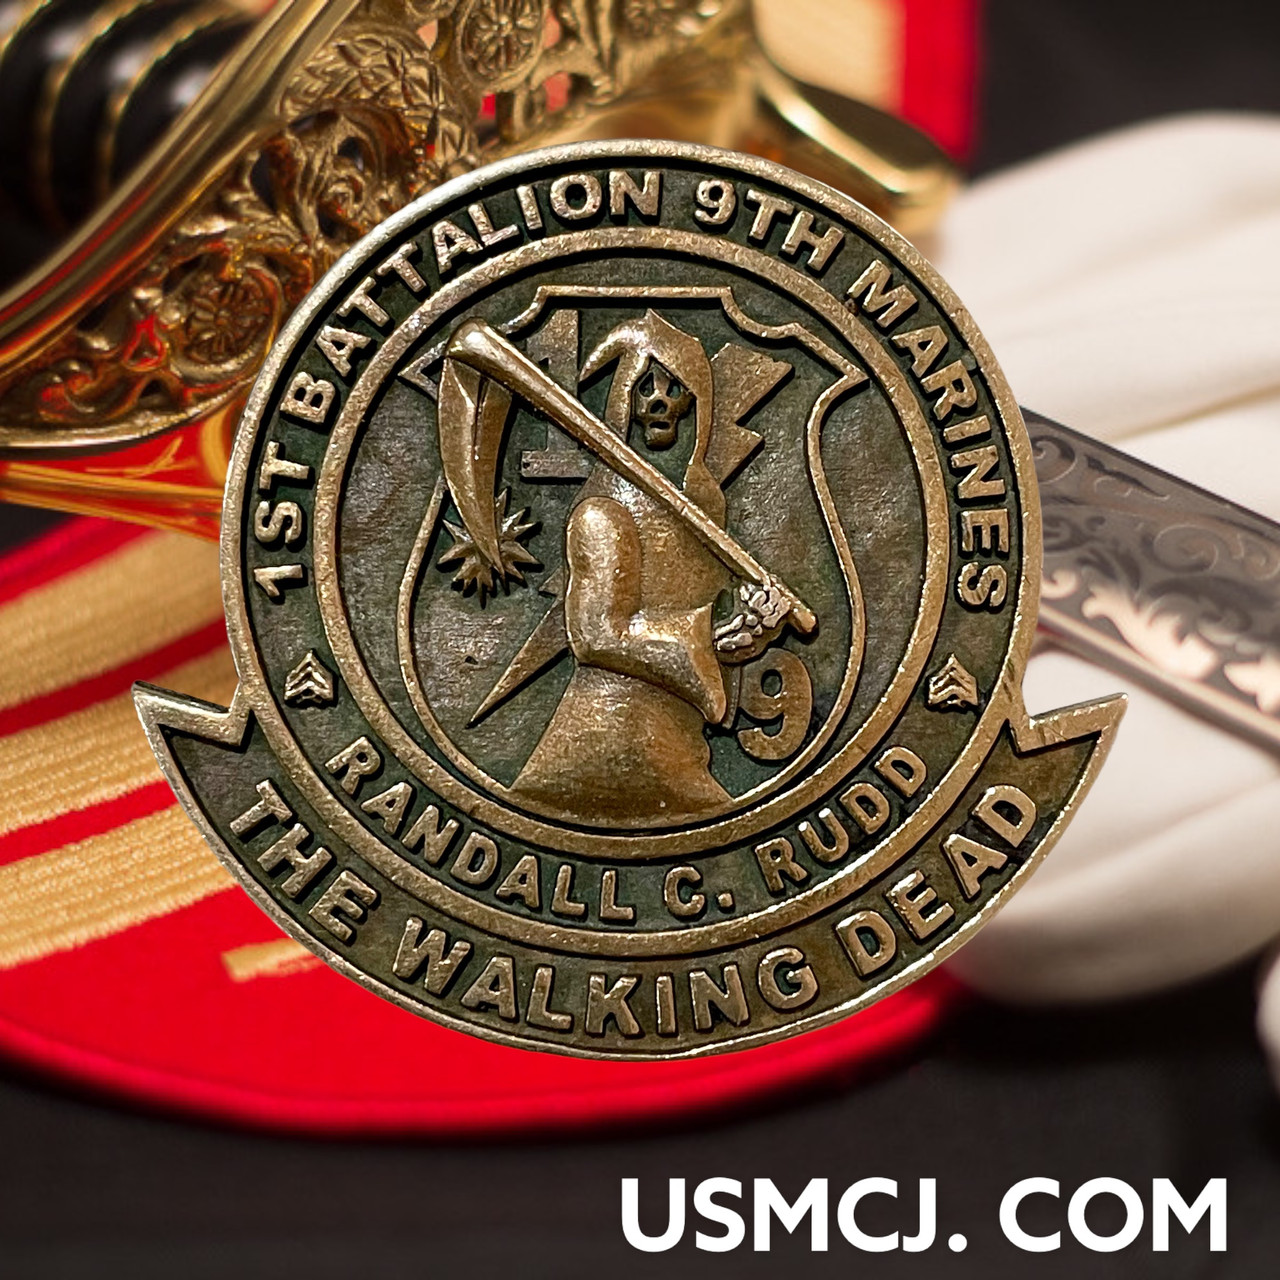 MCC19B THE WALKING DEAD CHALLENGE COIN MADE BY MARINES FOR MARINES